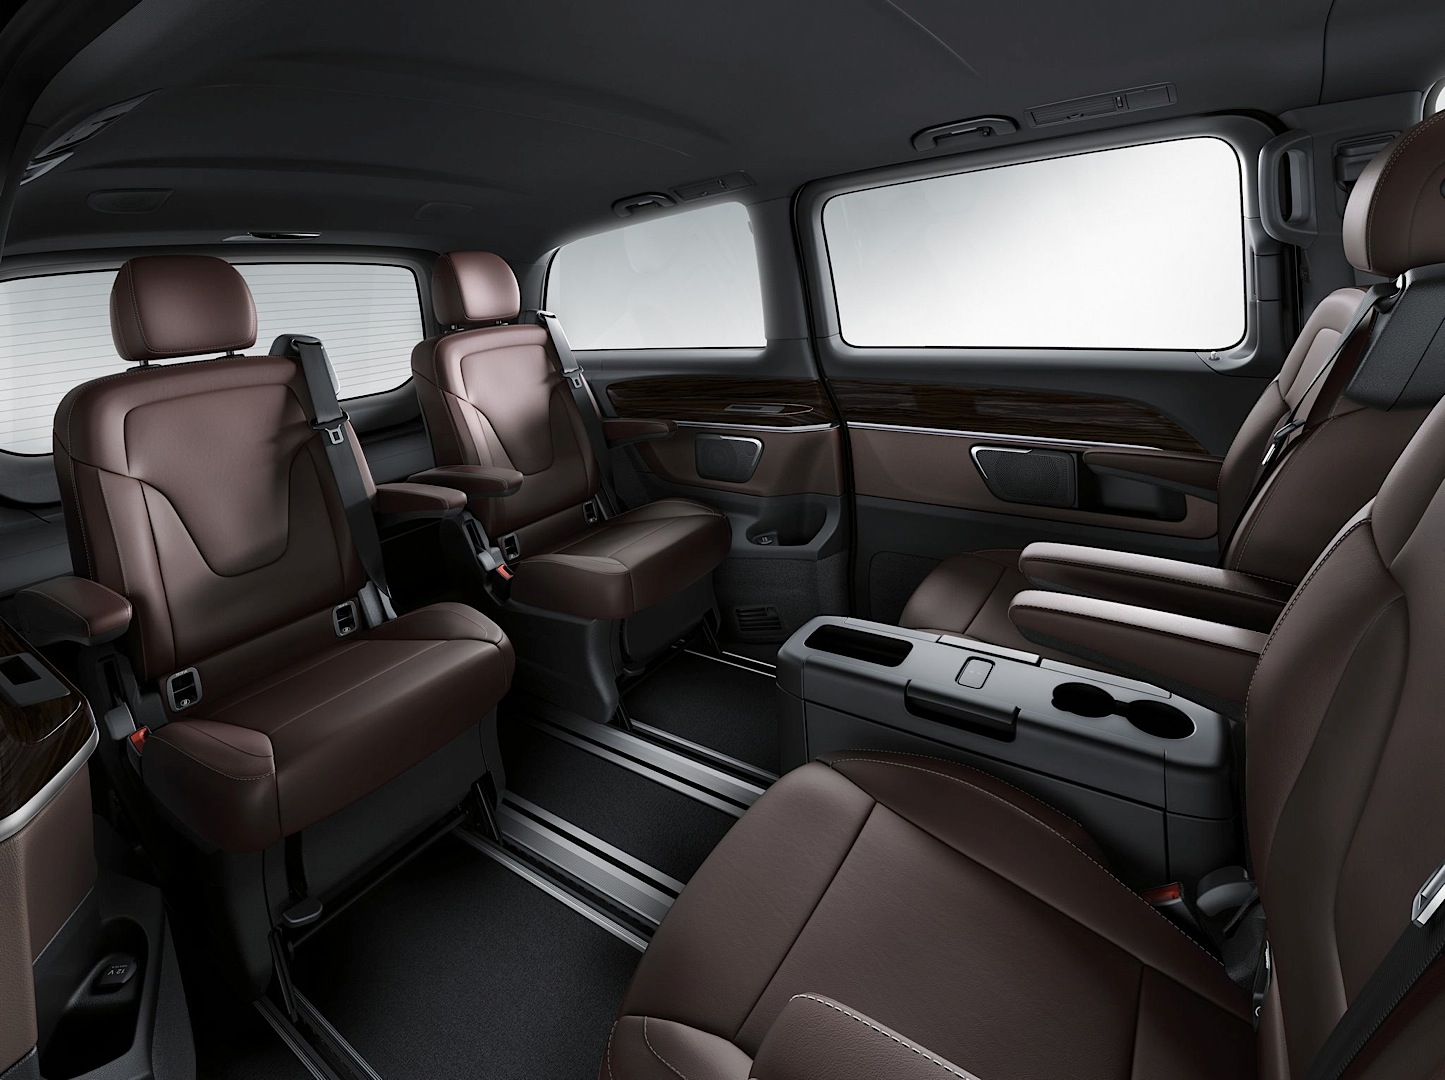 fantastic-design-of-the-brown-leather-seats-ideas-added-with-black-floor-as-the-mercedes-benz-v-class-2015-interior-ideas